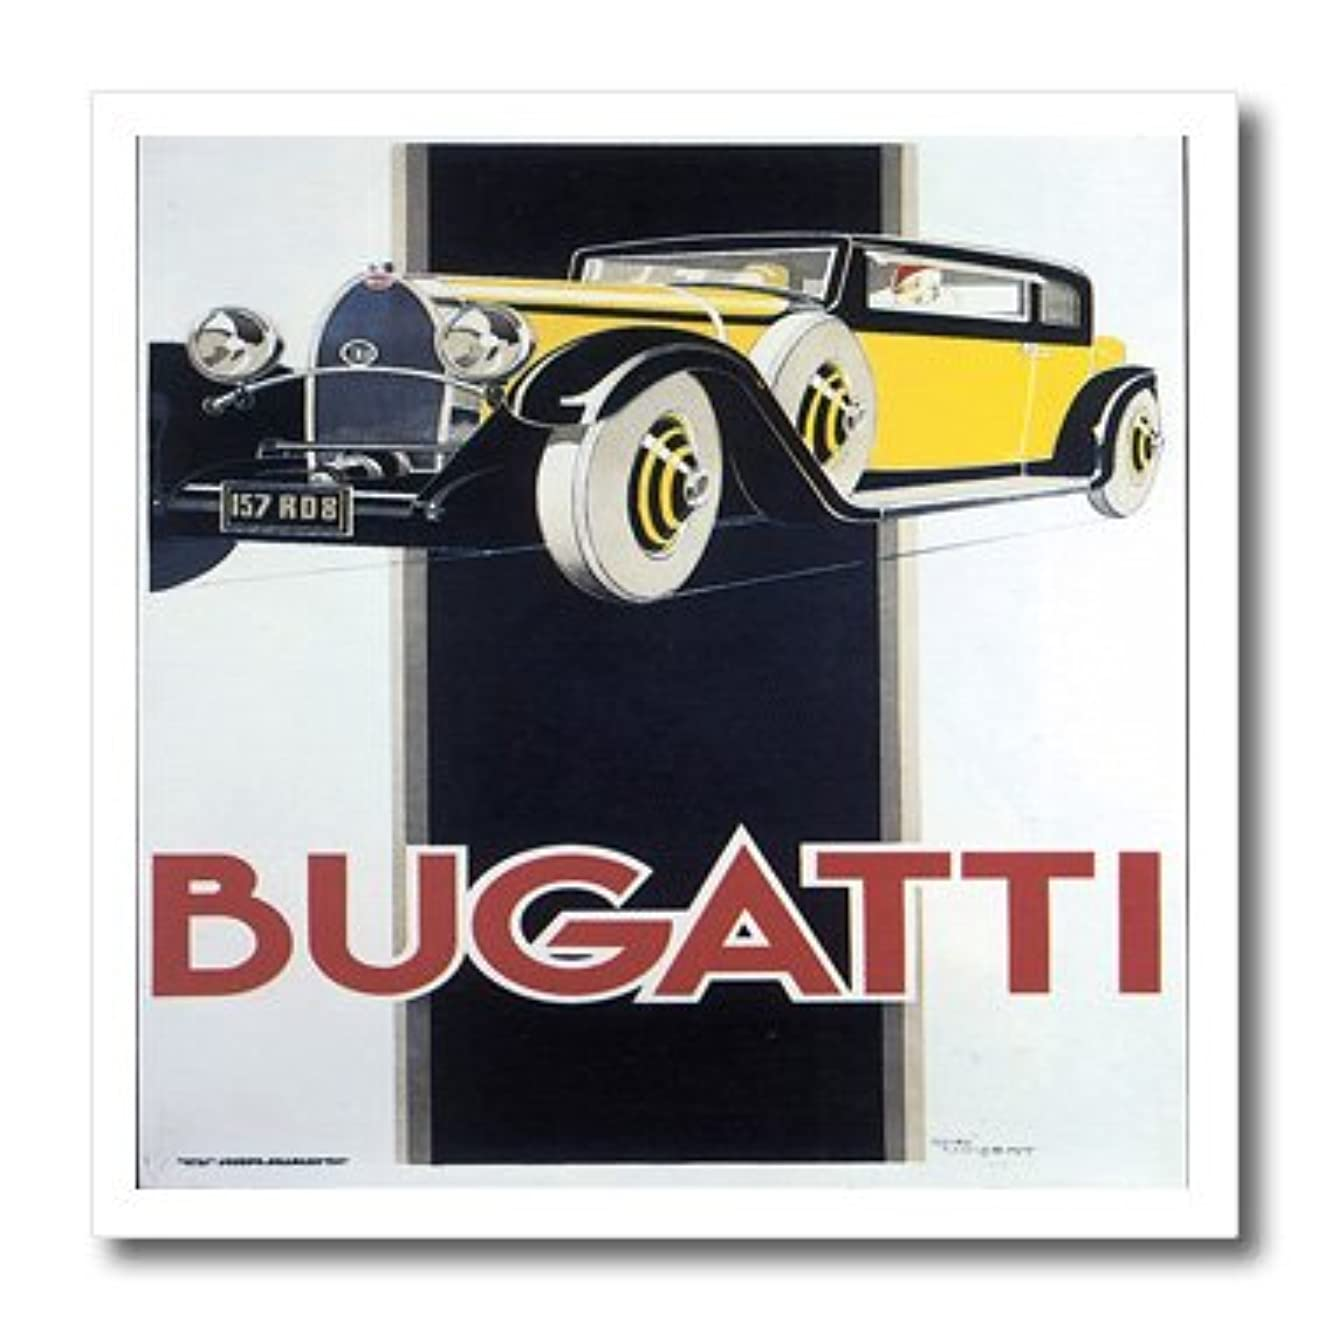 3dRose ht_129965_1 Vintage Bugatti Automobile Advertising Poster-Iron on Heat Transfer for White Material, 8 by 8-Inch